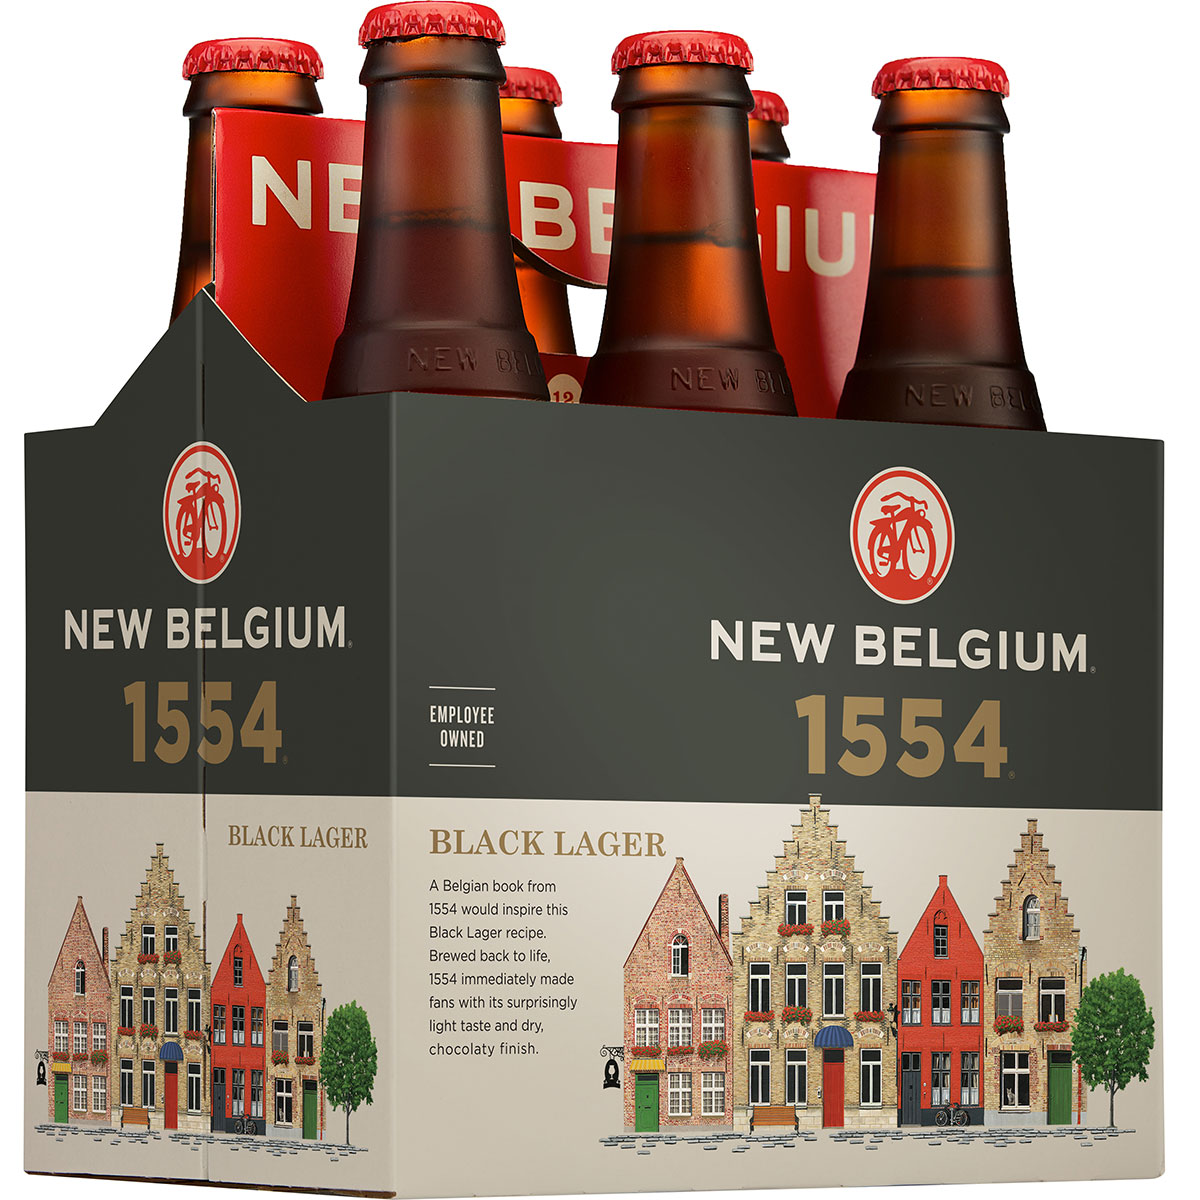 Credit: New Belgium Brewing